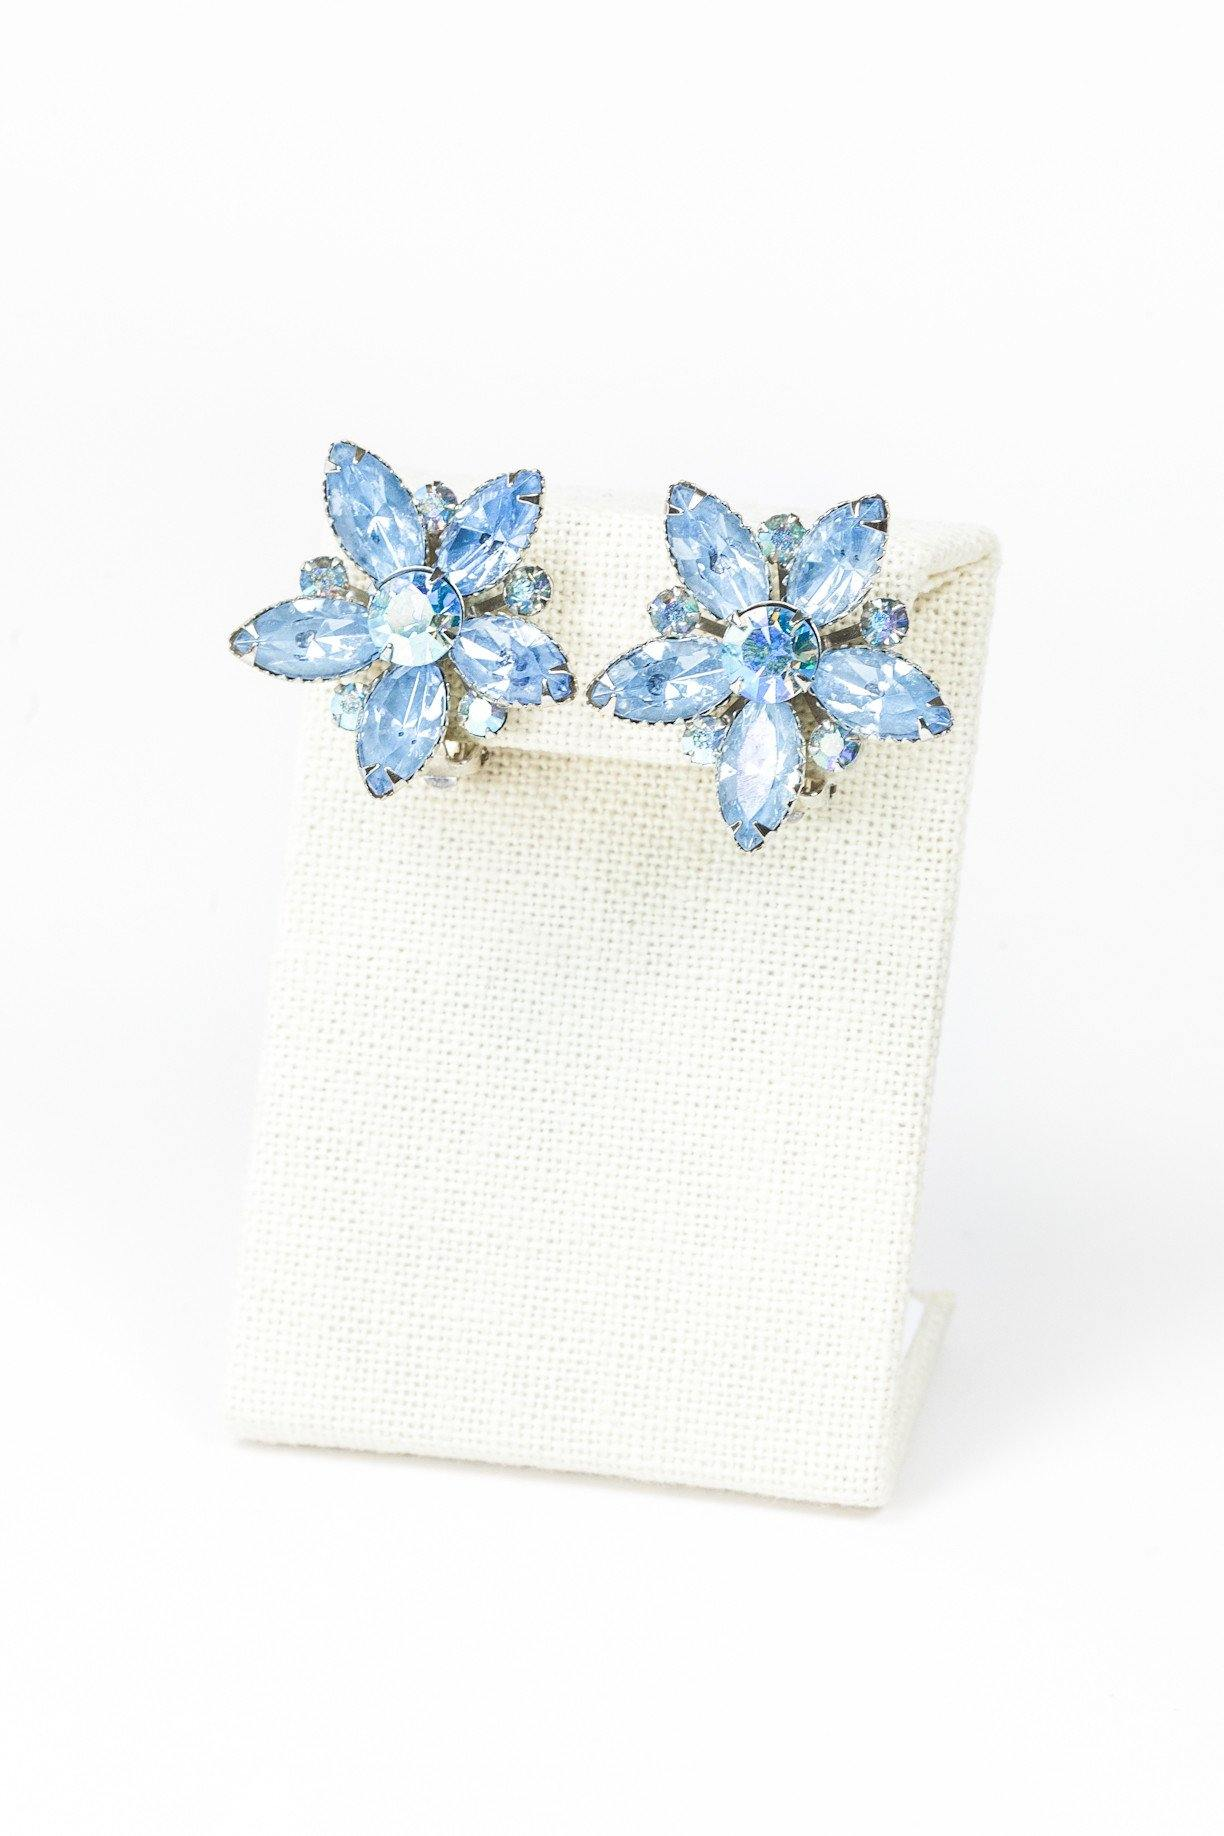 50's__Beaujewel__Floral Earrings